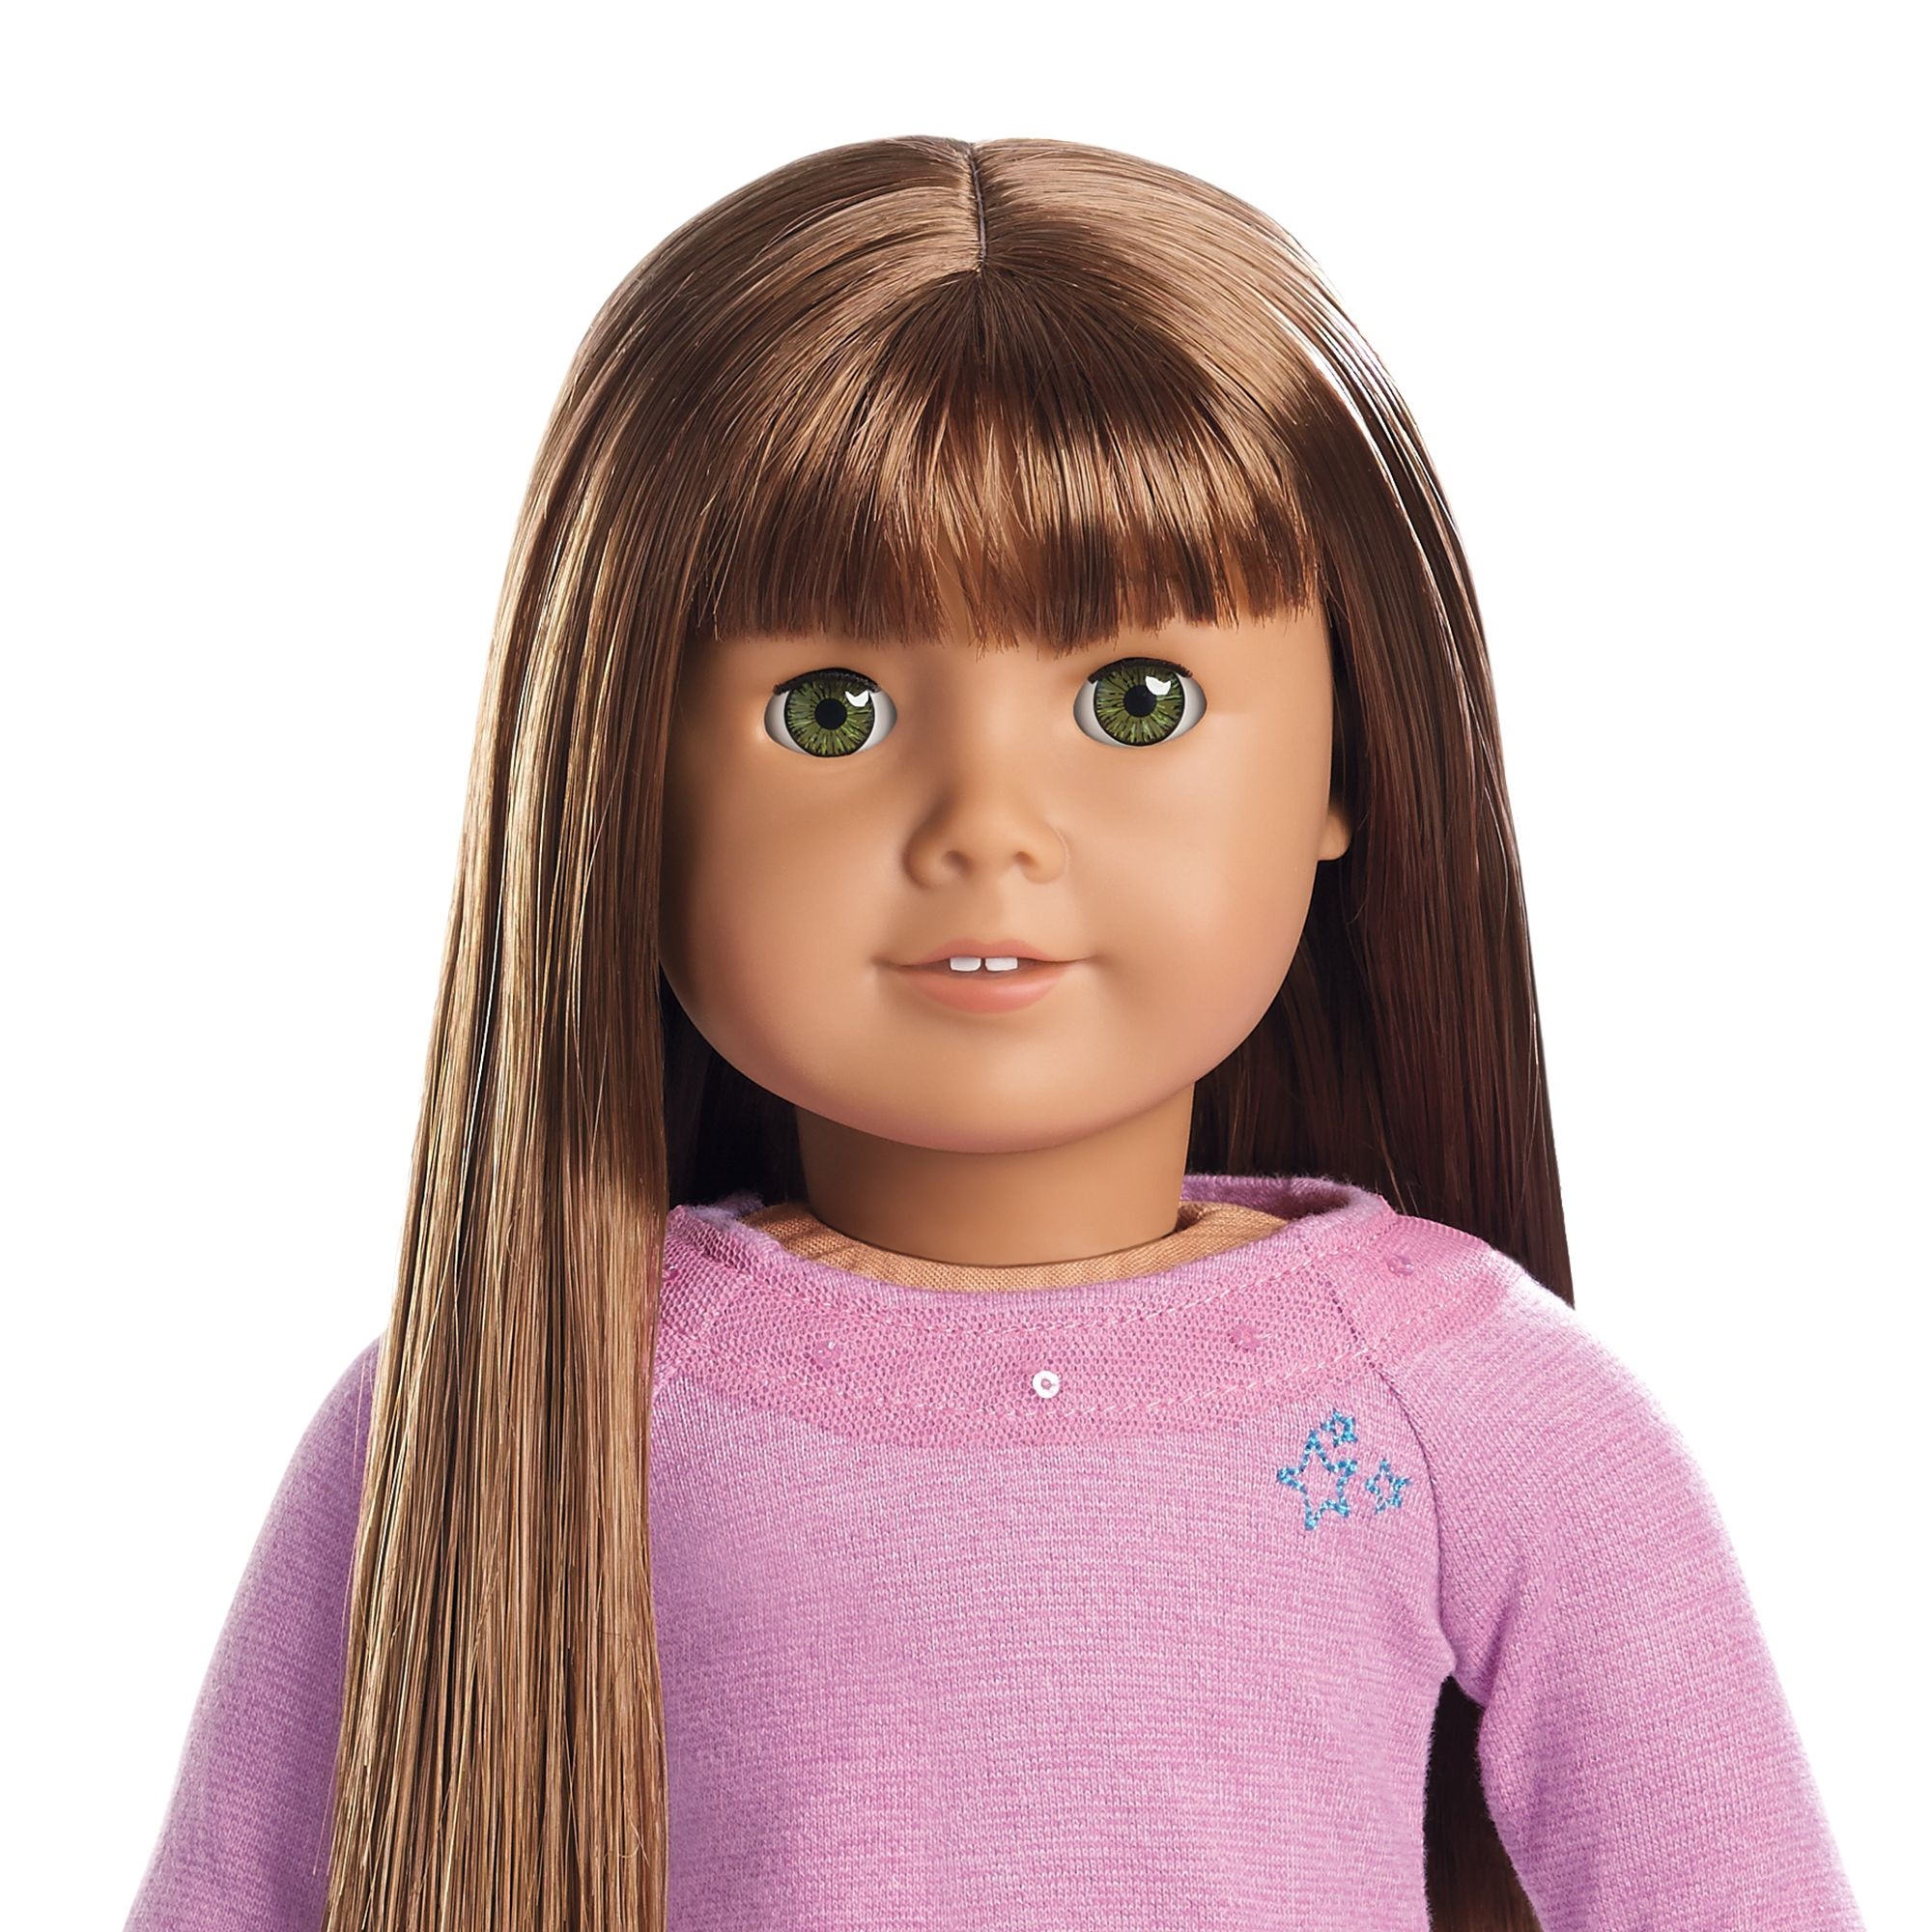 How to name a doll